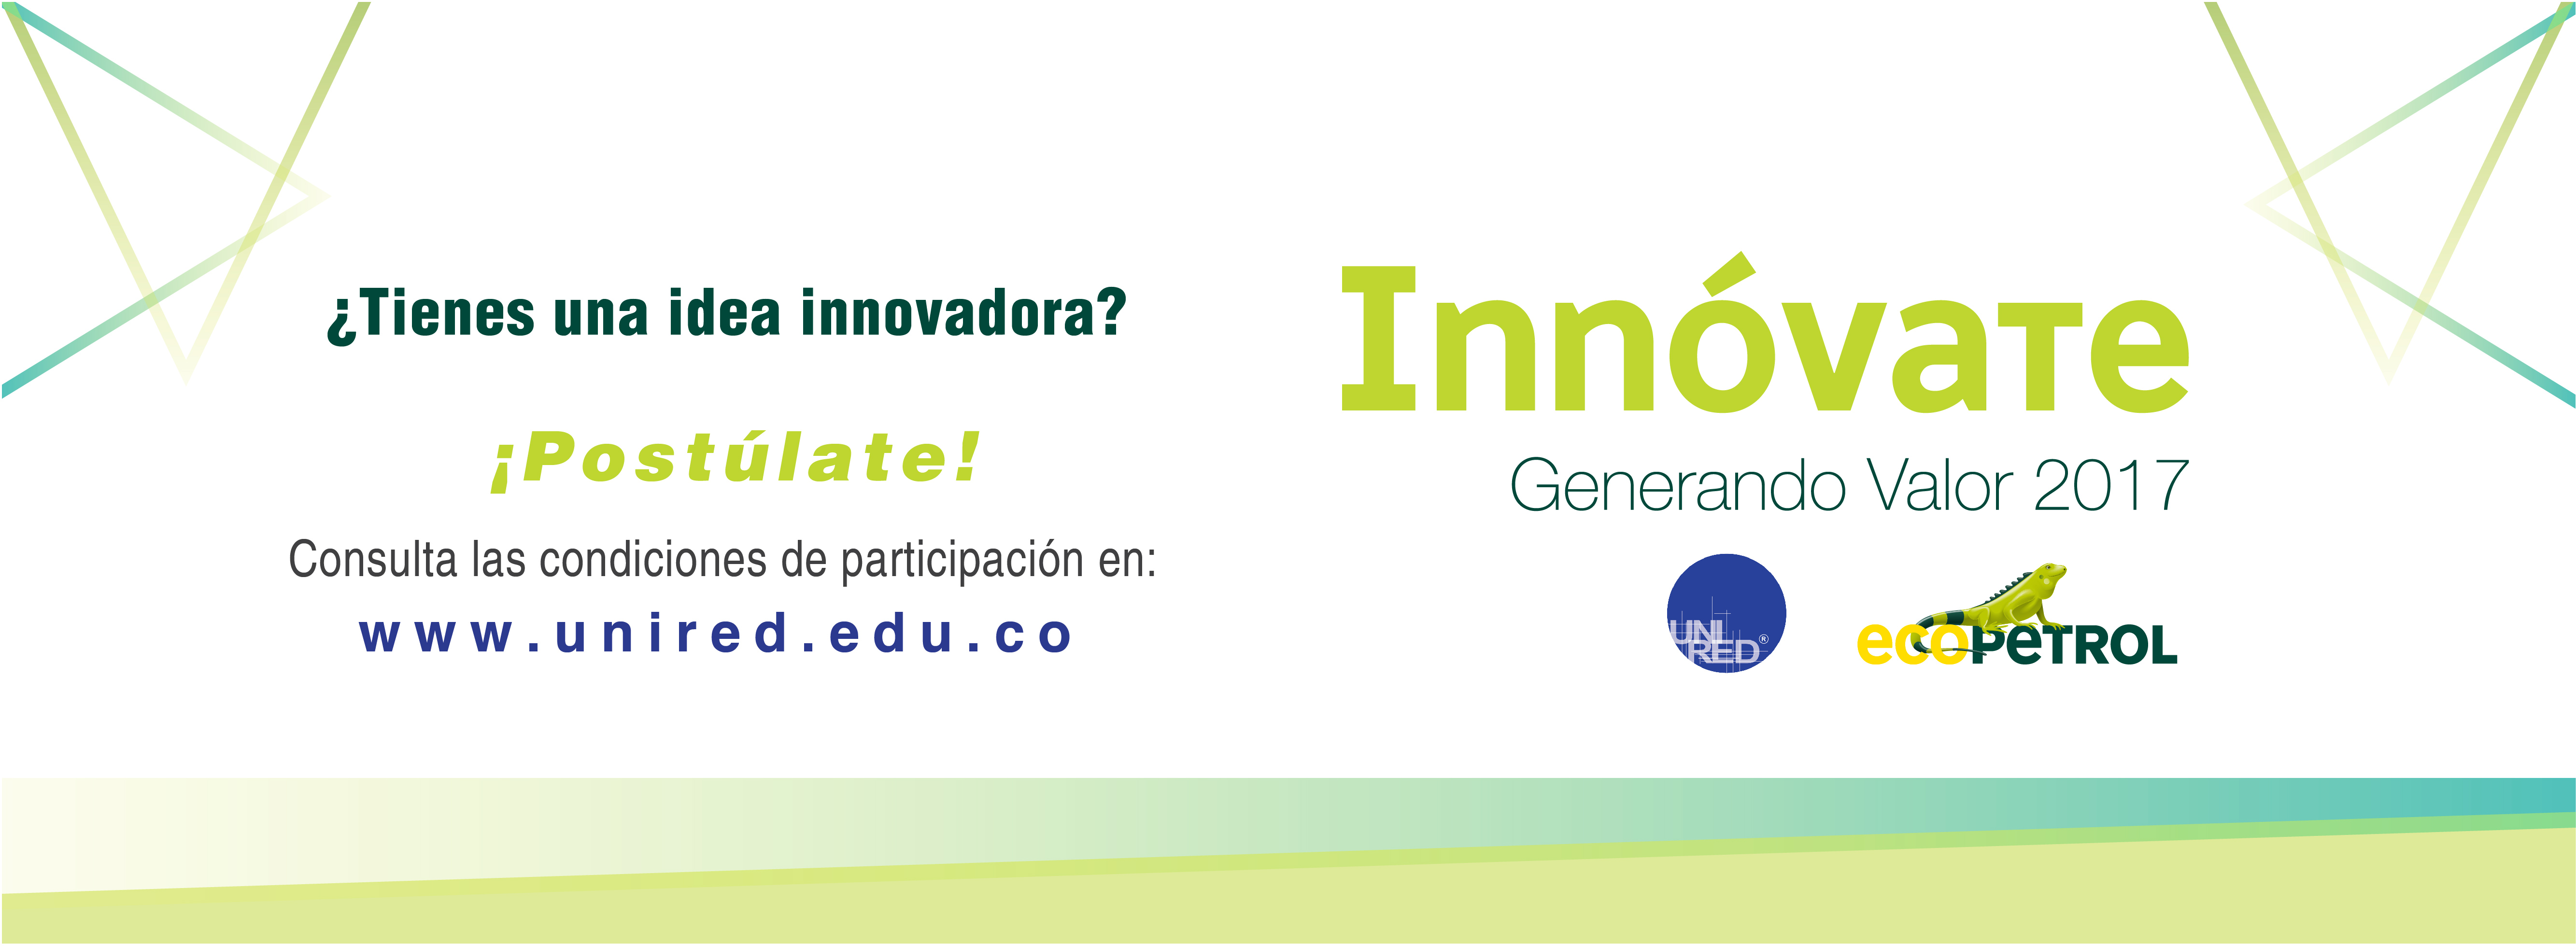 ¡Postulate! Concurso InnóvaTe 2017